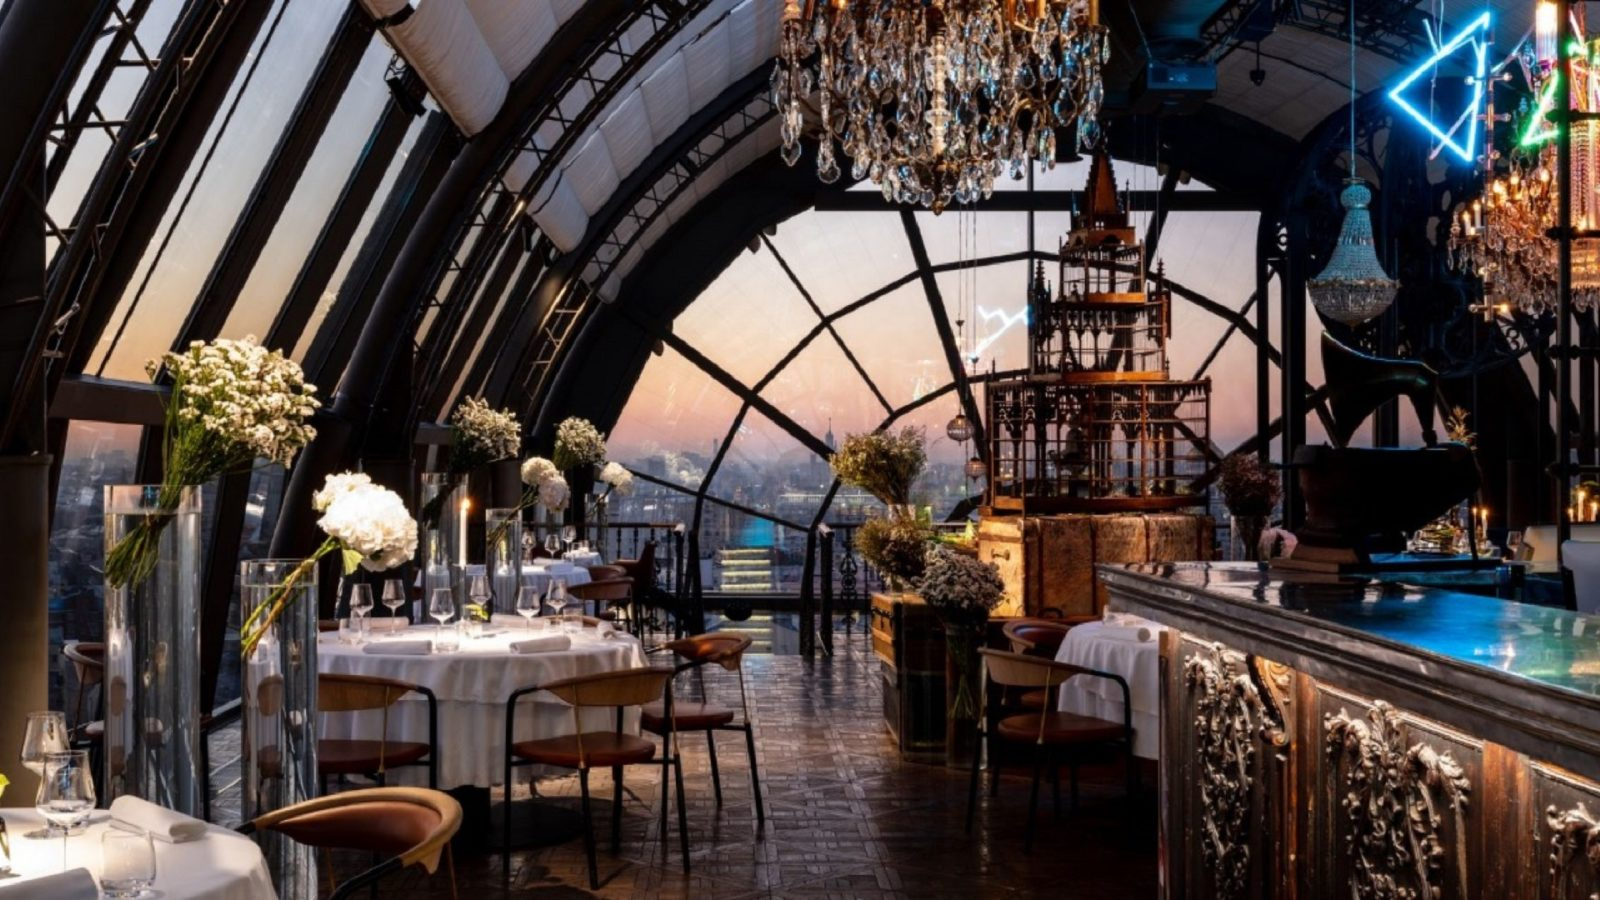 The most beautiful restaurants in the world with stunning architecture and interior design